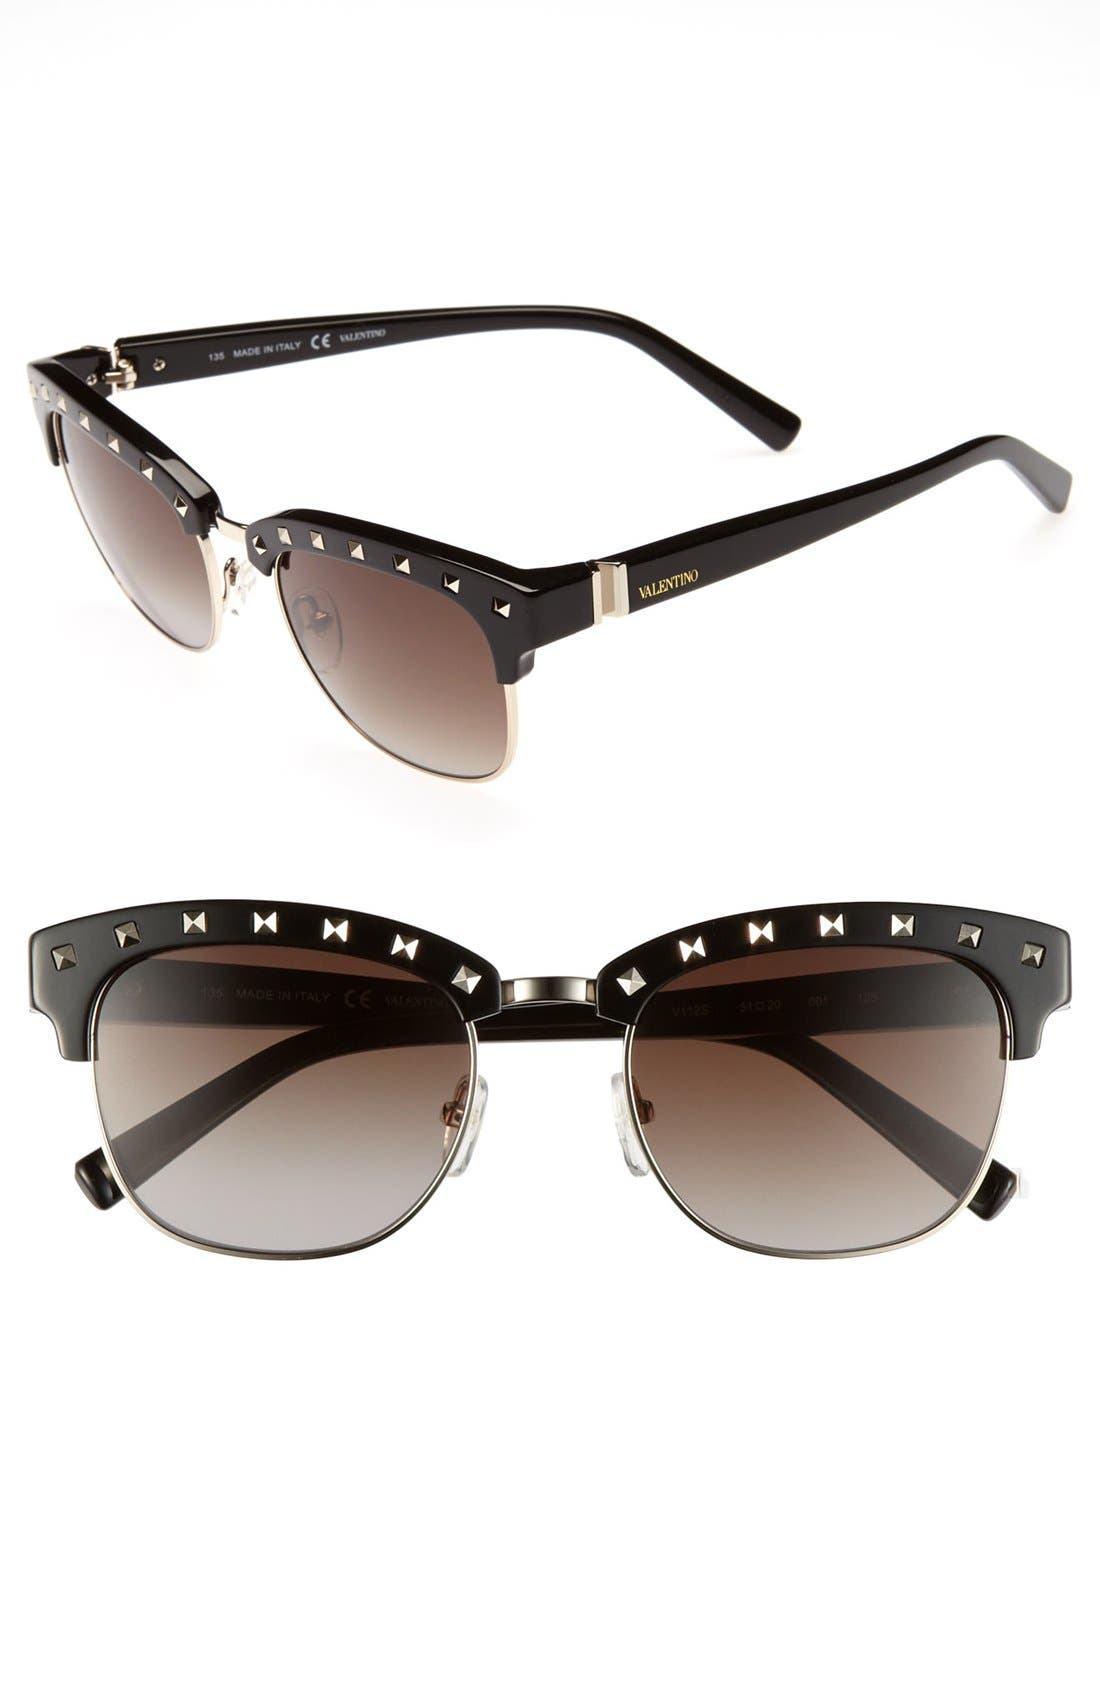 Main Image - Valentino 'Rockstud' Sunglasses (Online Only)